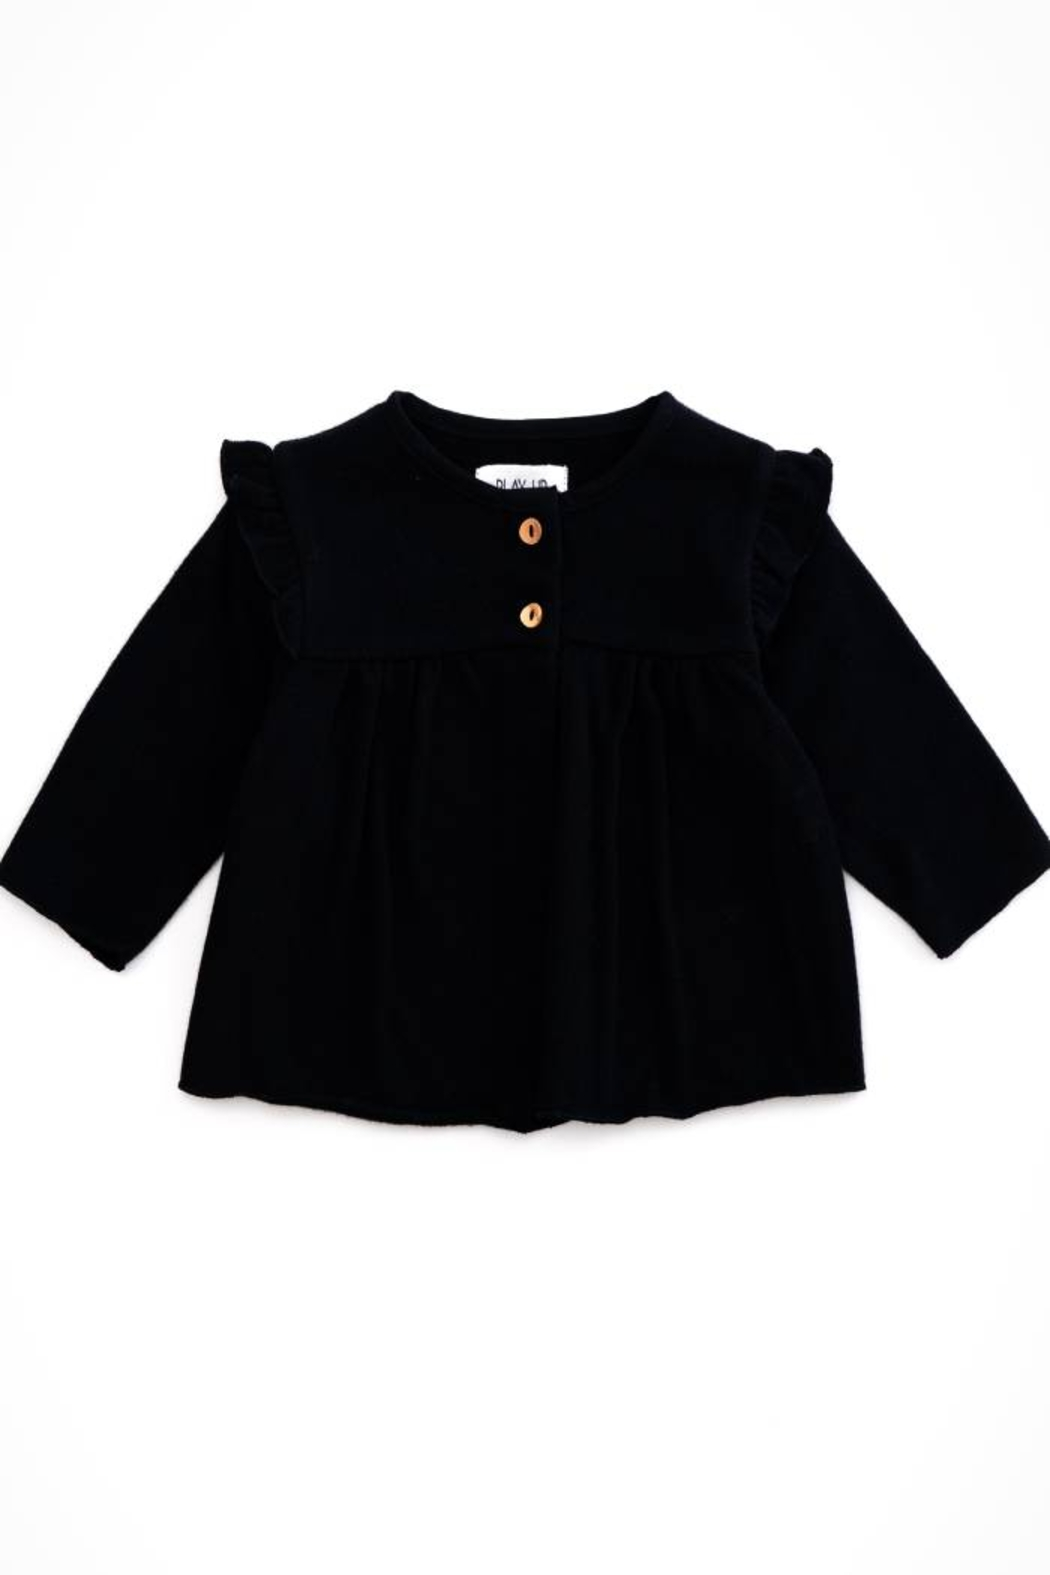 Play Up Organic Cotton Fleece Sweater two botton Jacket for Girls - Front Cropped Image